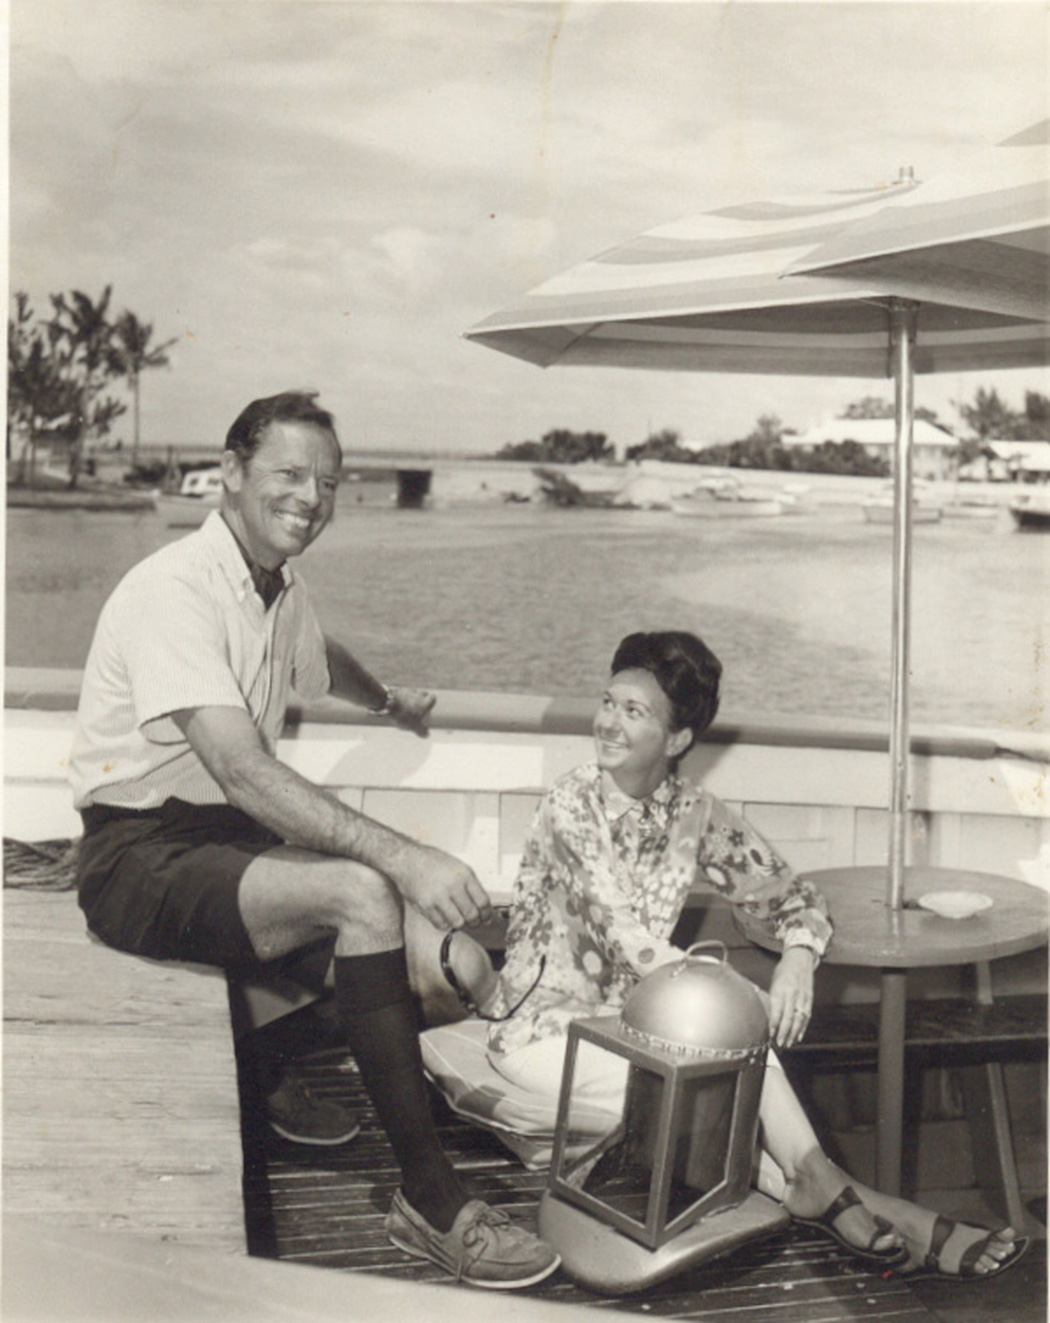 Bronson and Harriet Hartley on Carioca at the Coral Island Hotel dock